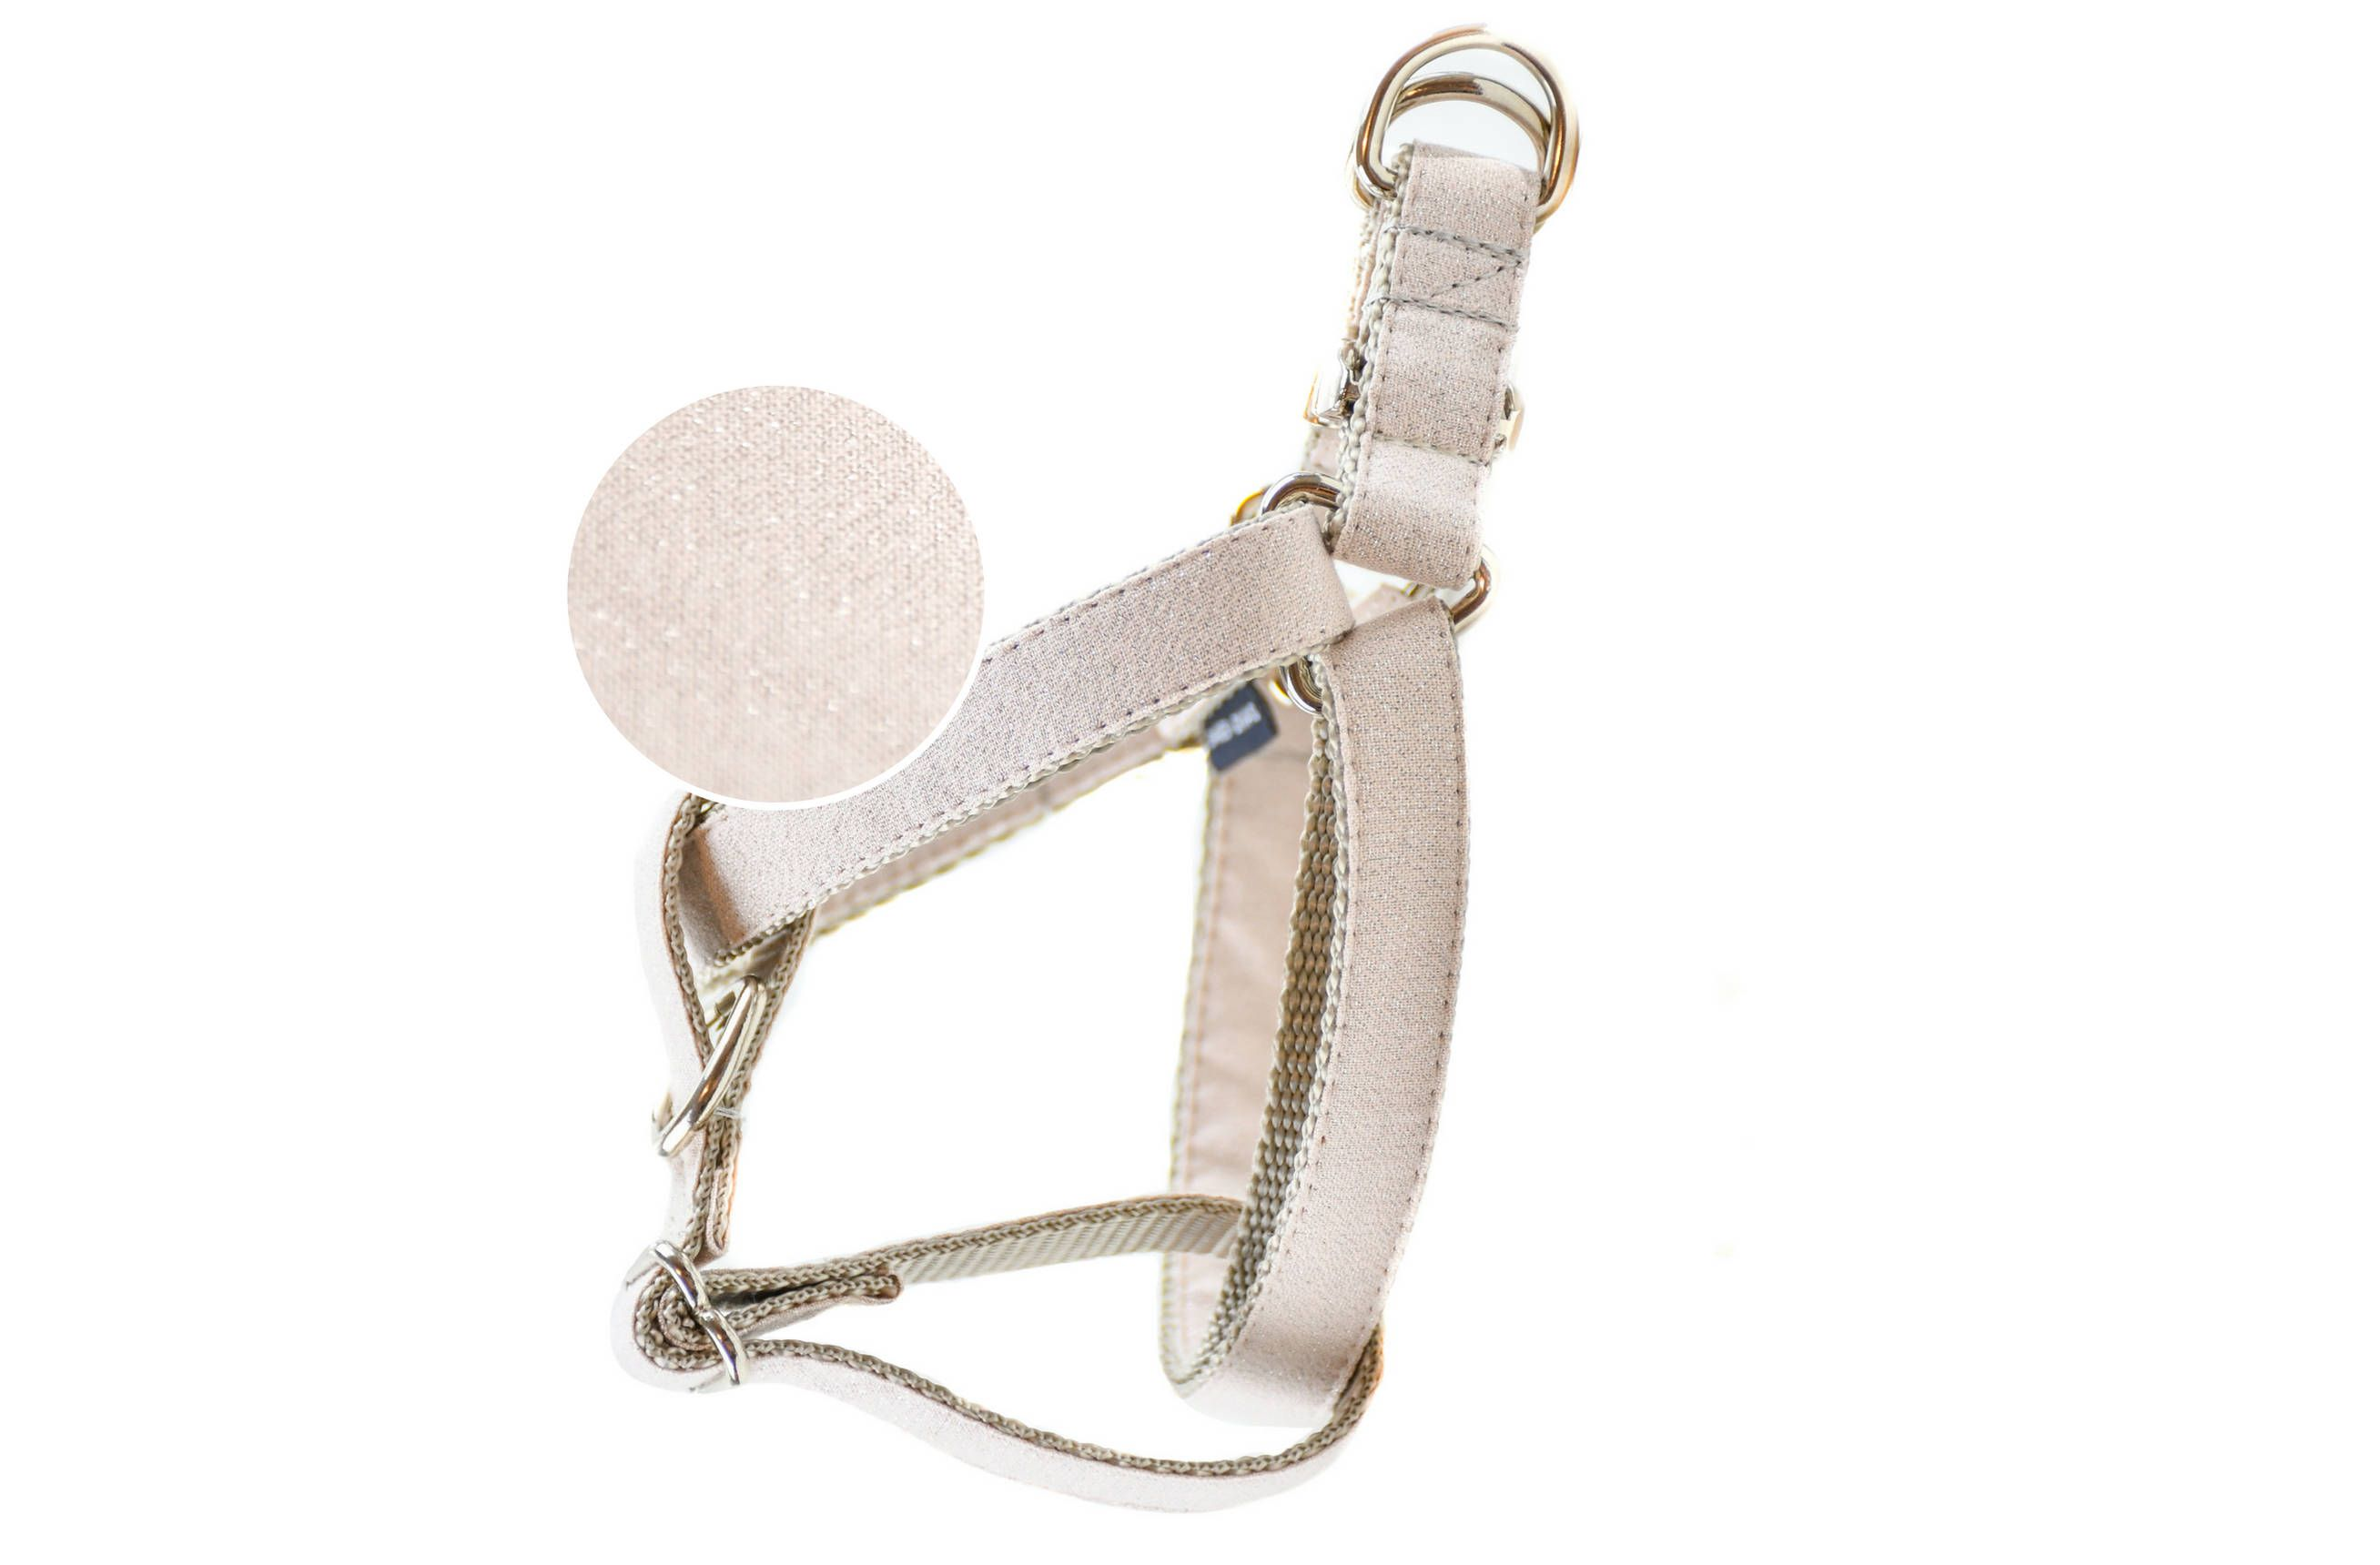 Creamrose Metallic Pearl Dog Harness No Pull Front Clip Step In